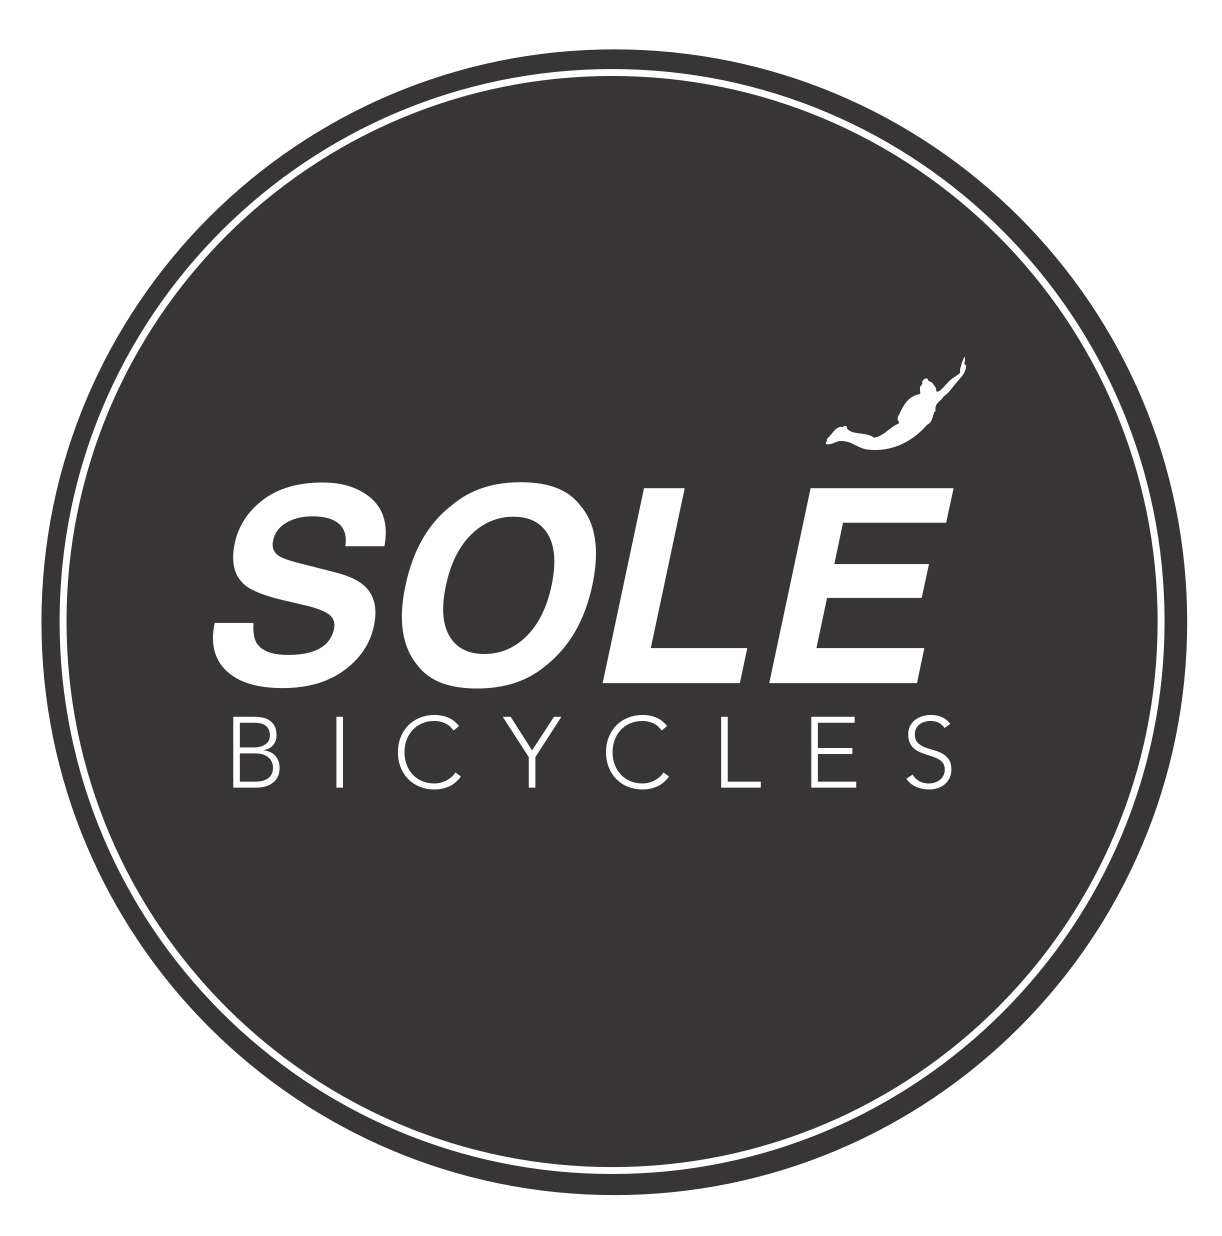 Go to Solé Bicycles's profile